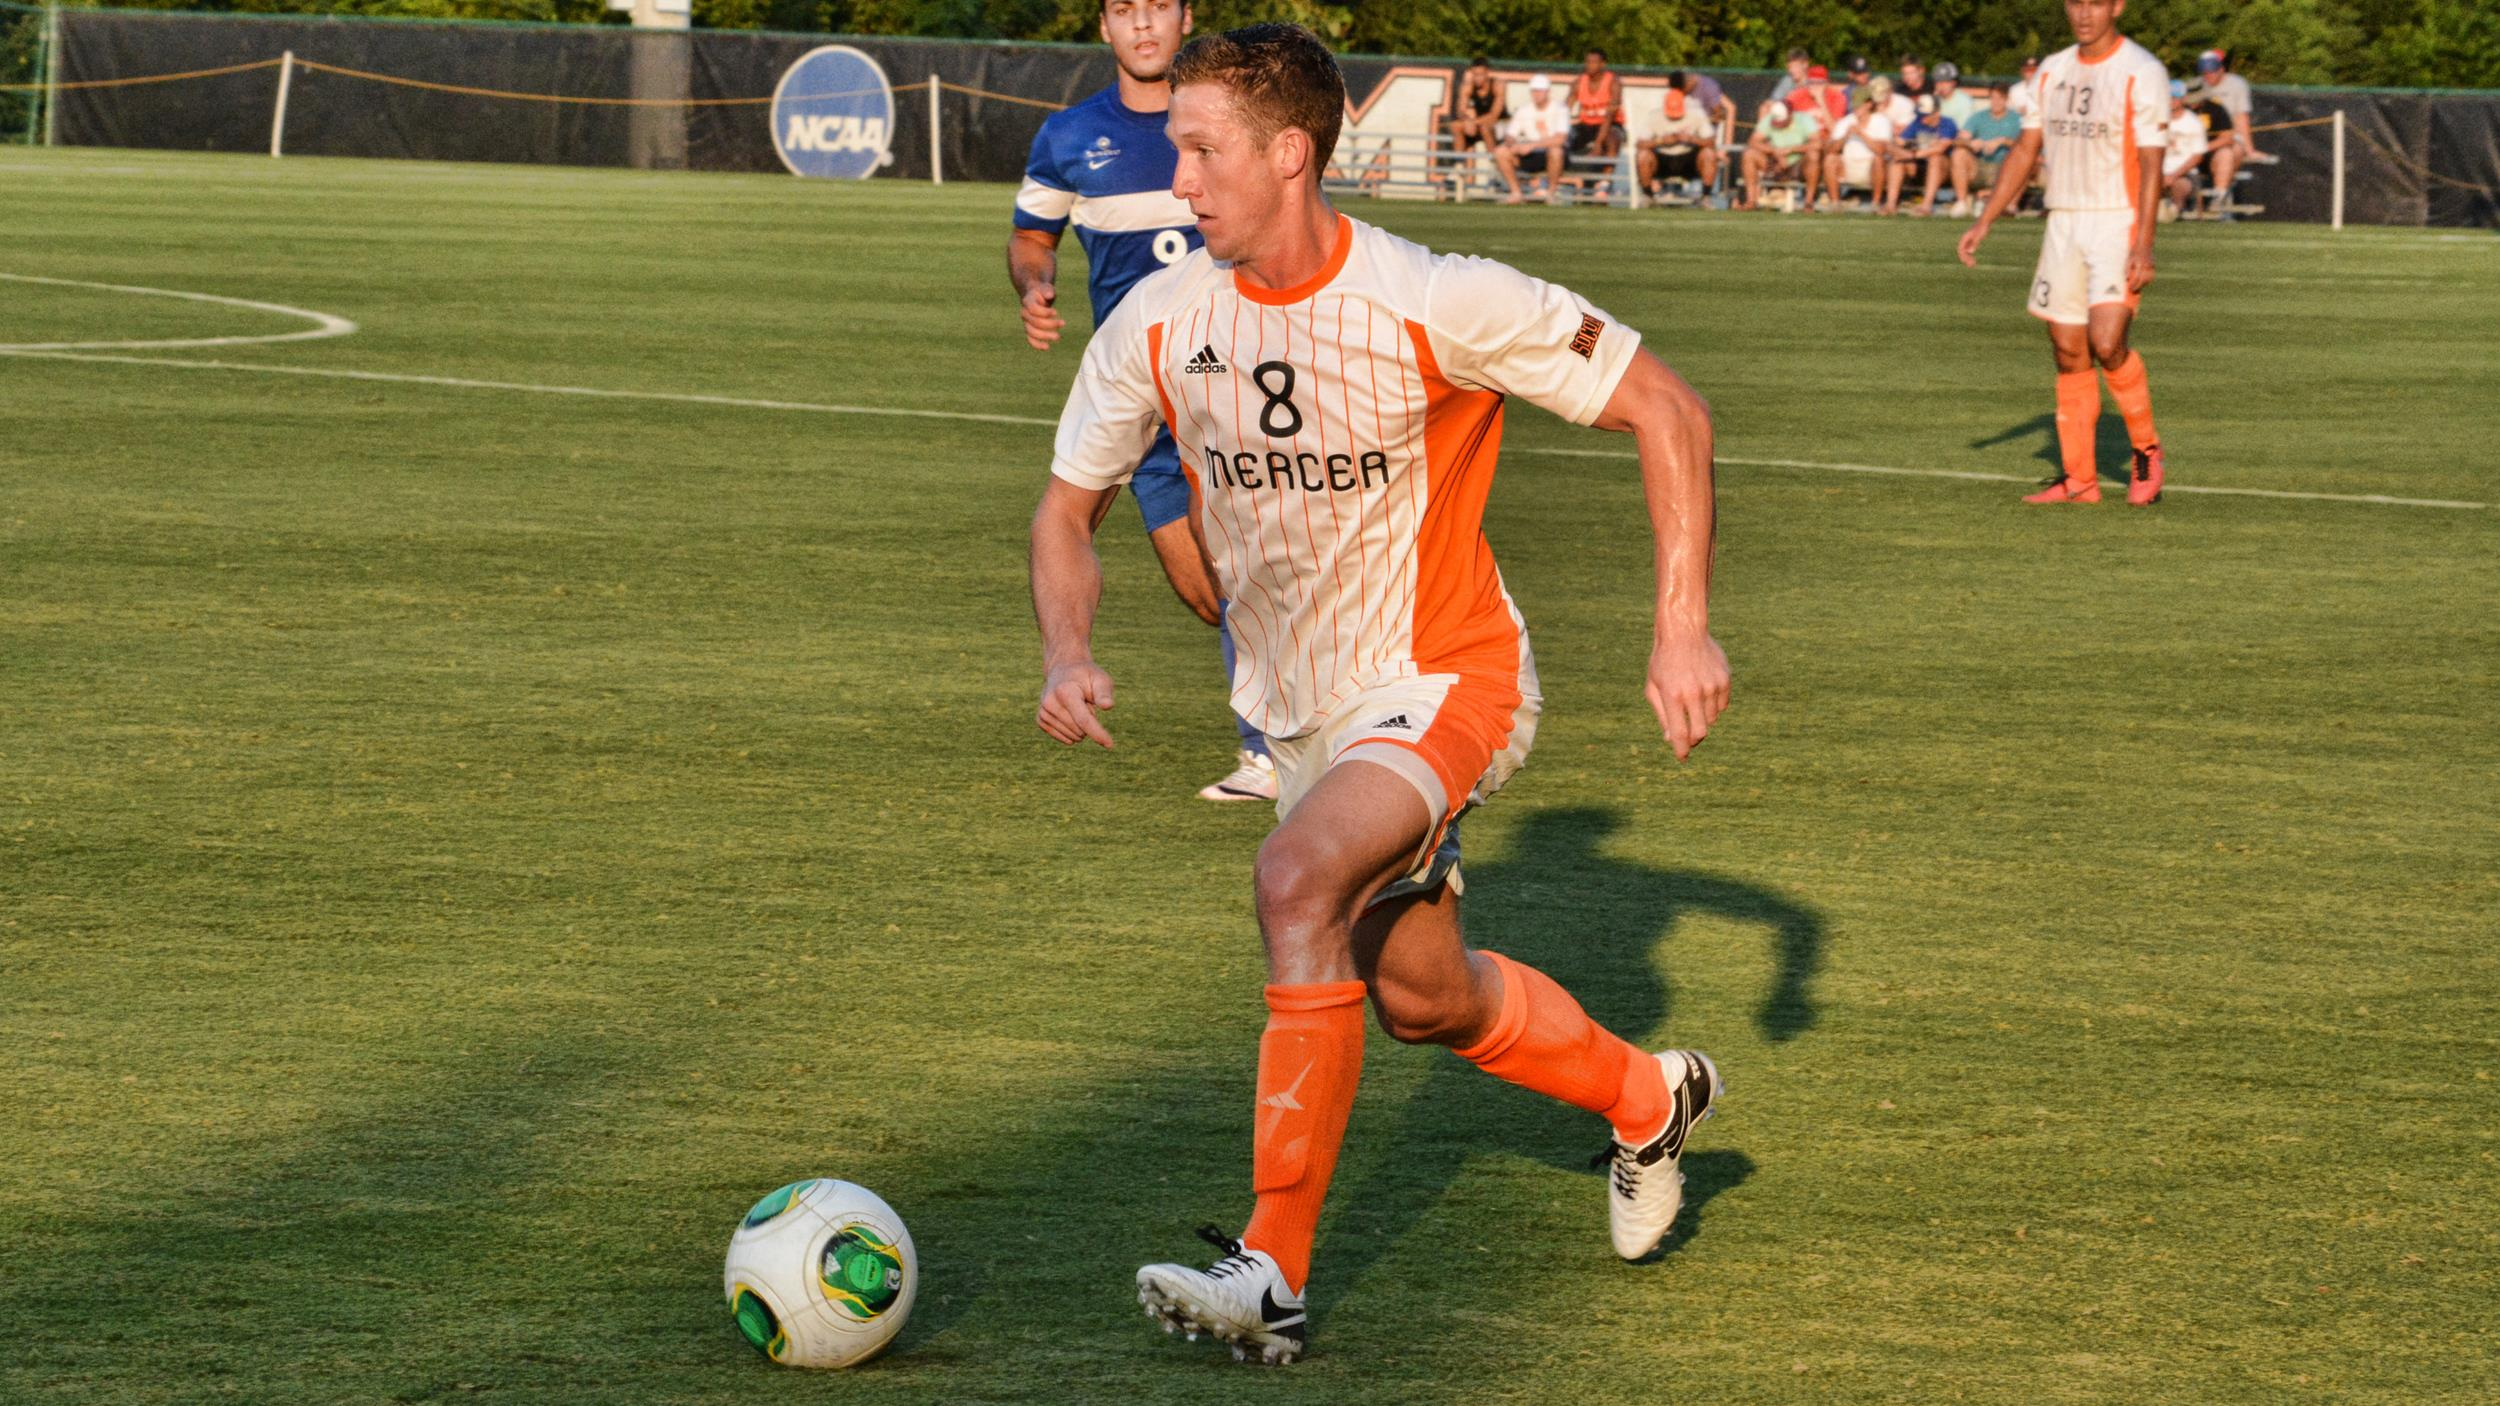 Top 50 PDL players to watch in college in 2017